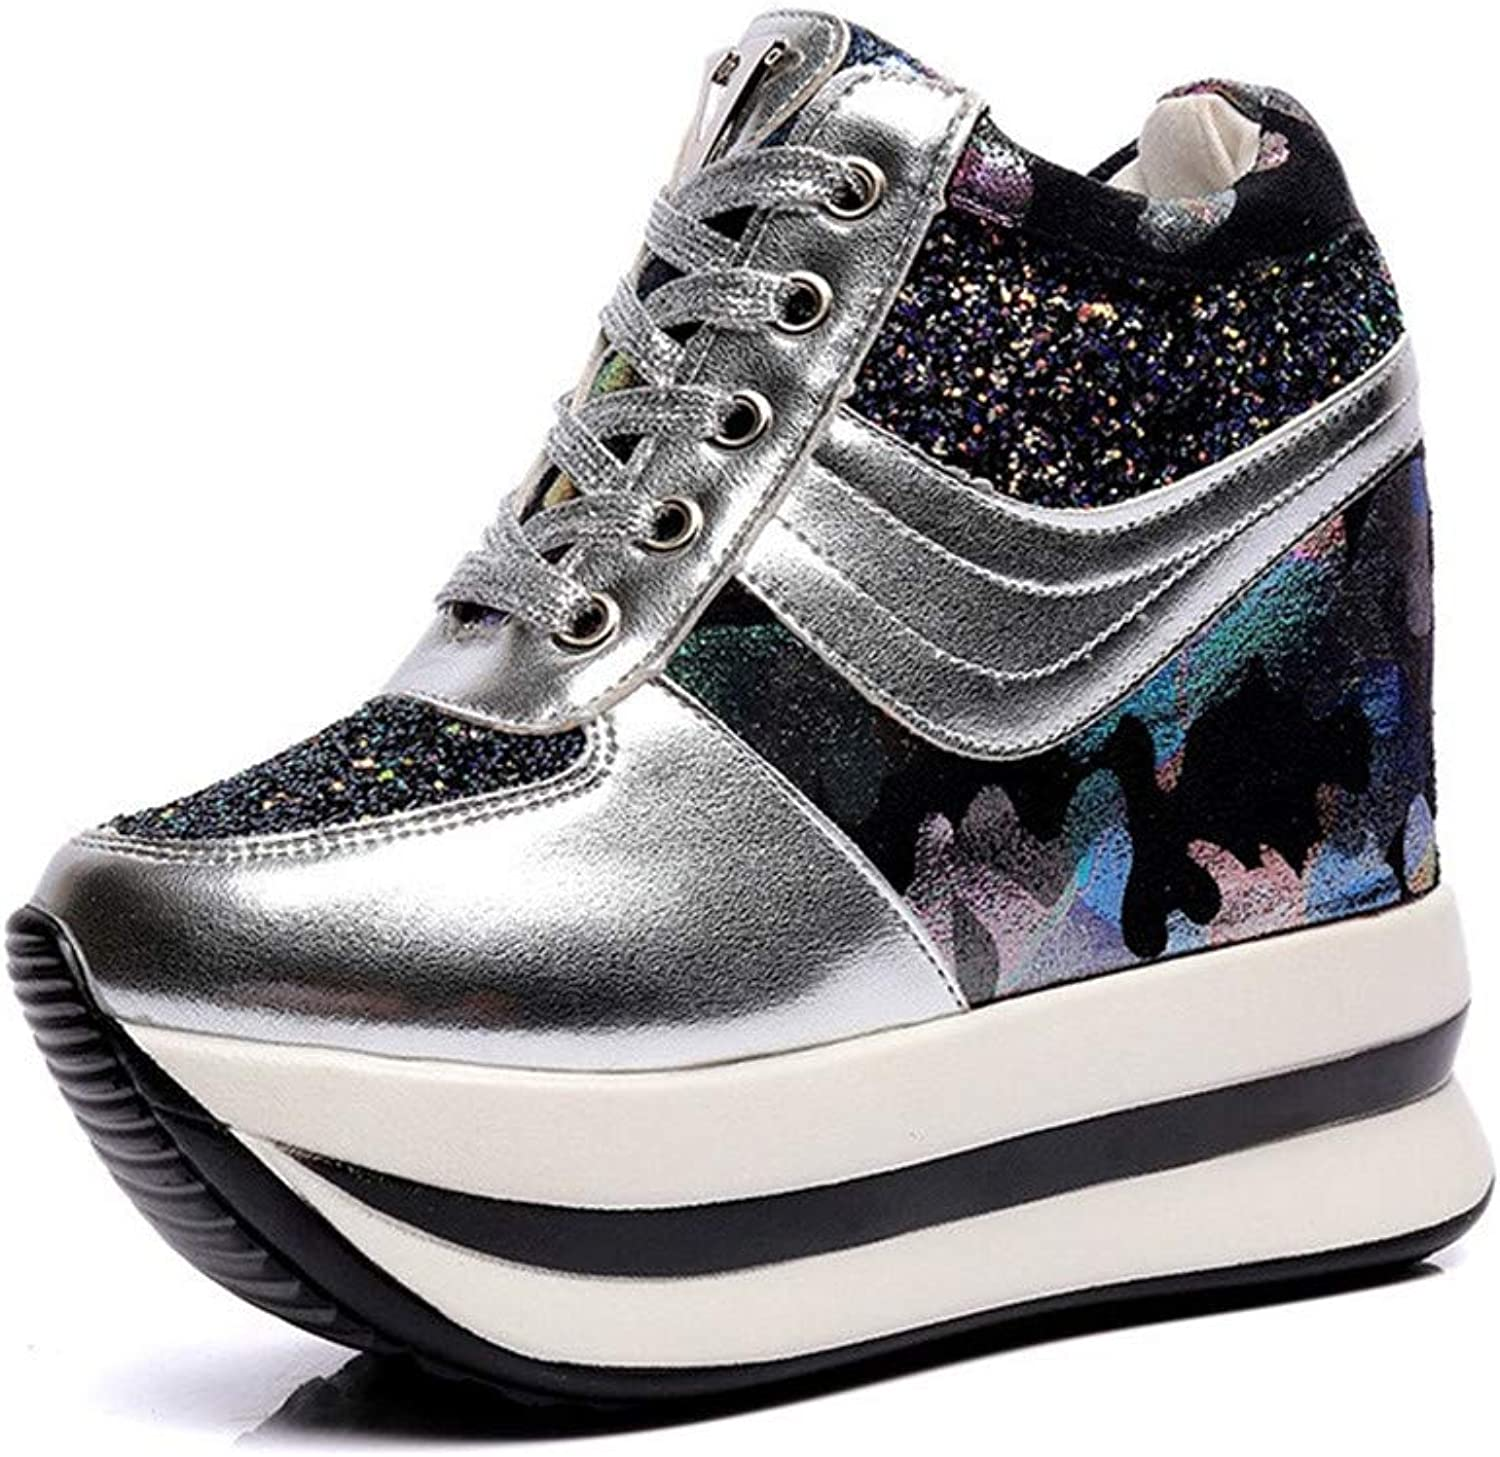 Btrada Women High Top Hidden Heel Wedges Sneakers Fashion Platform Sneaker Casual Lace up Walking shoes